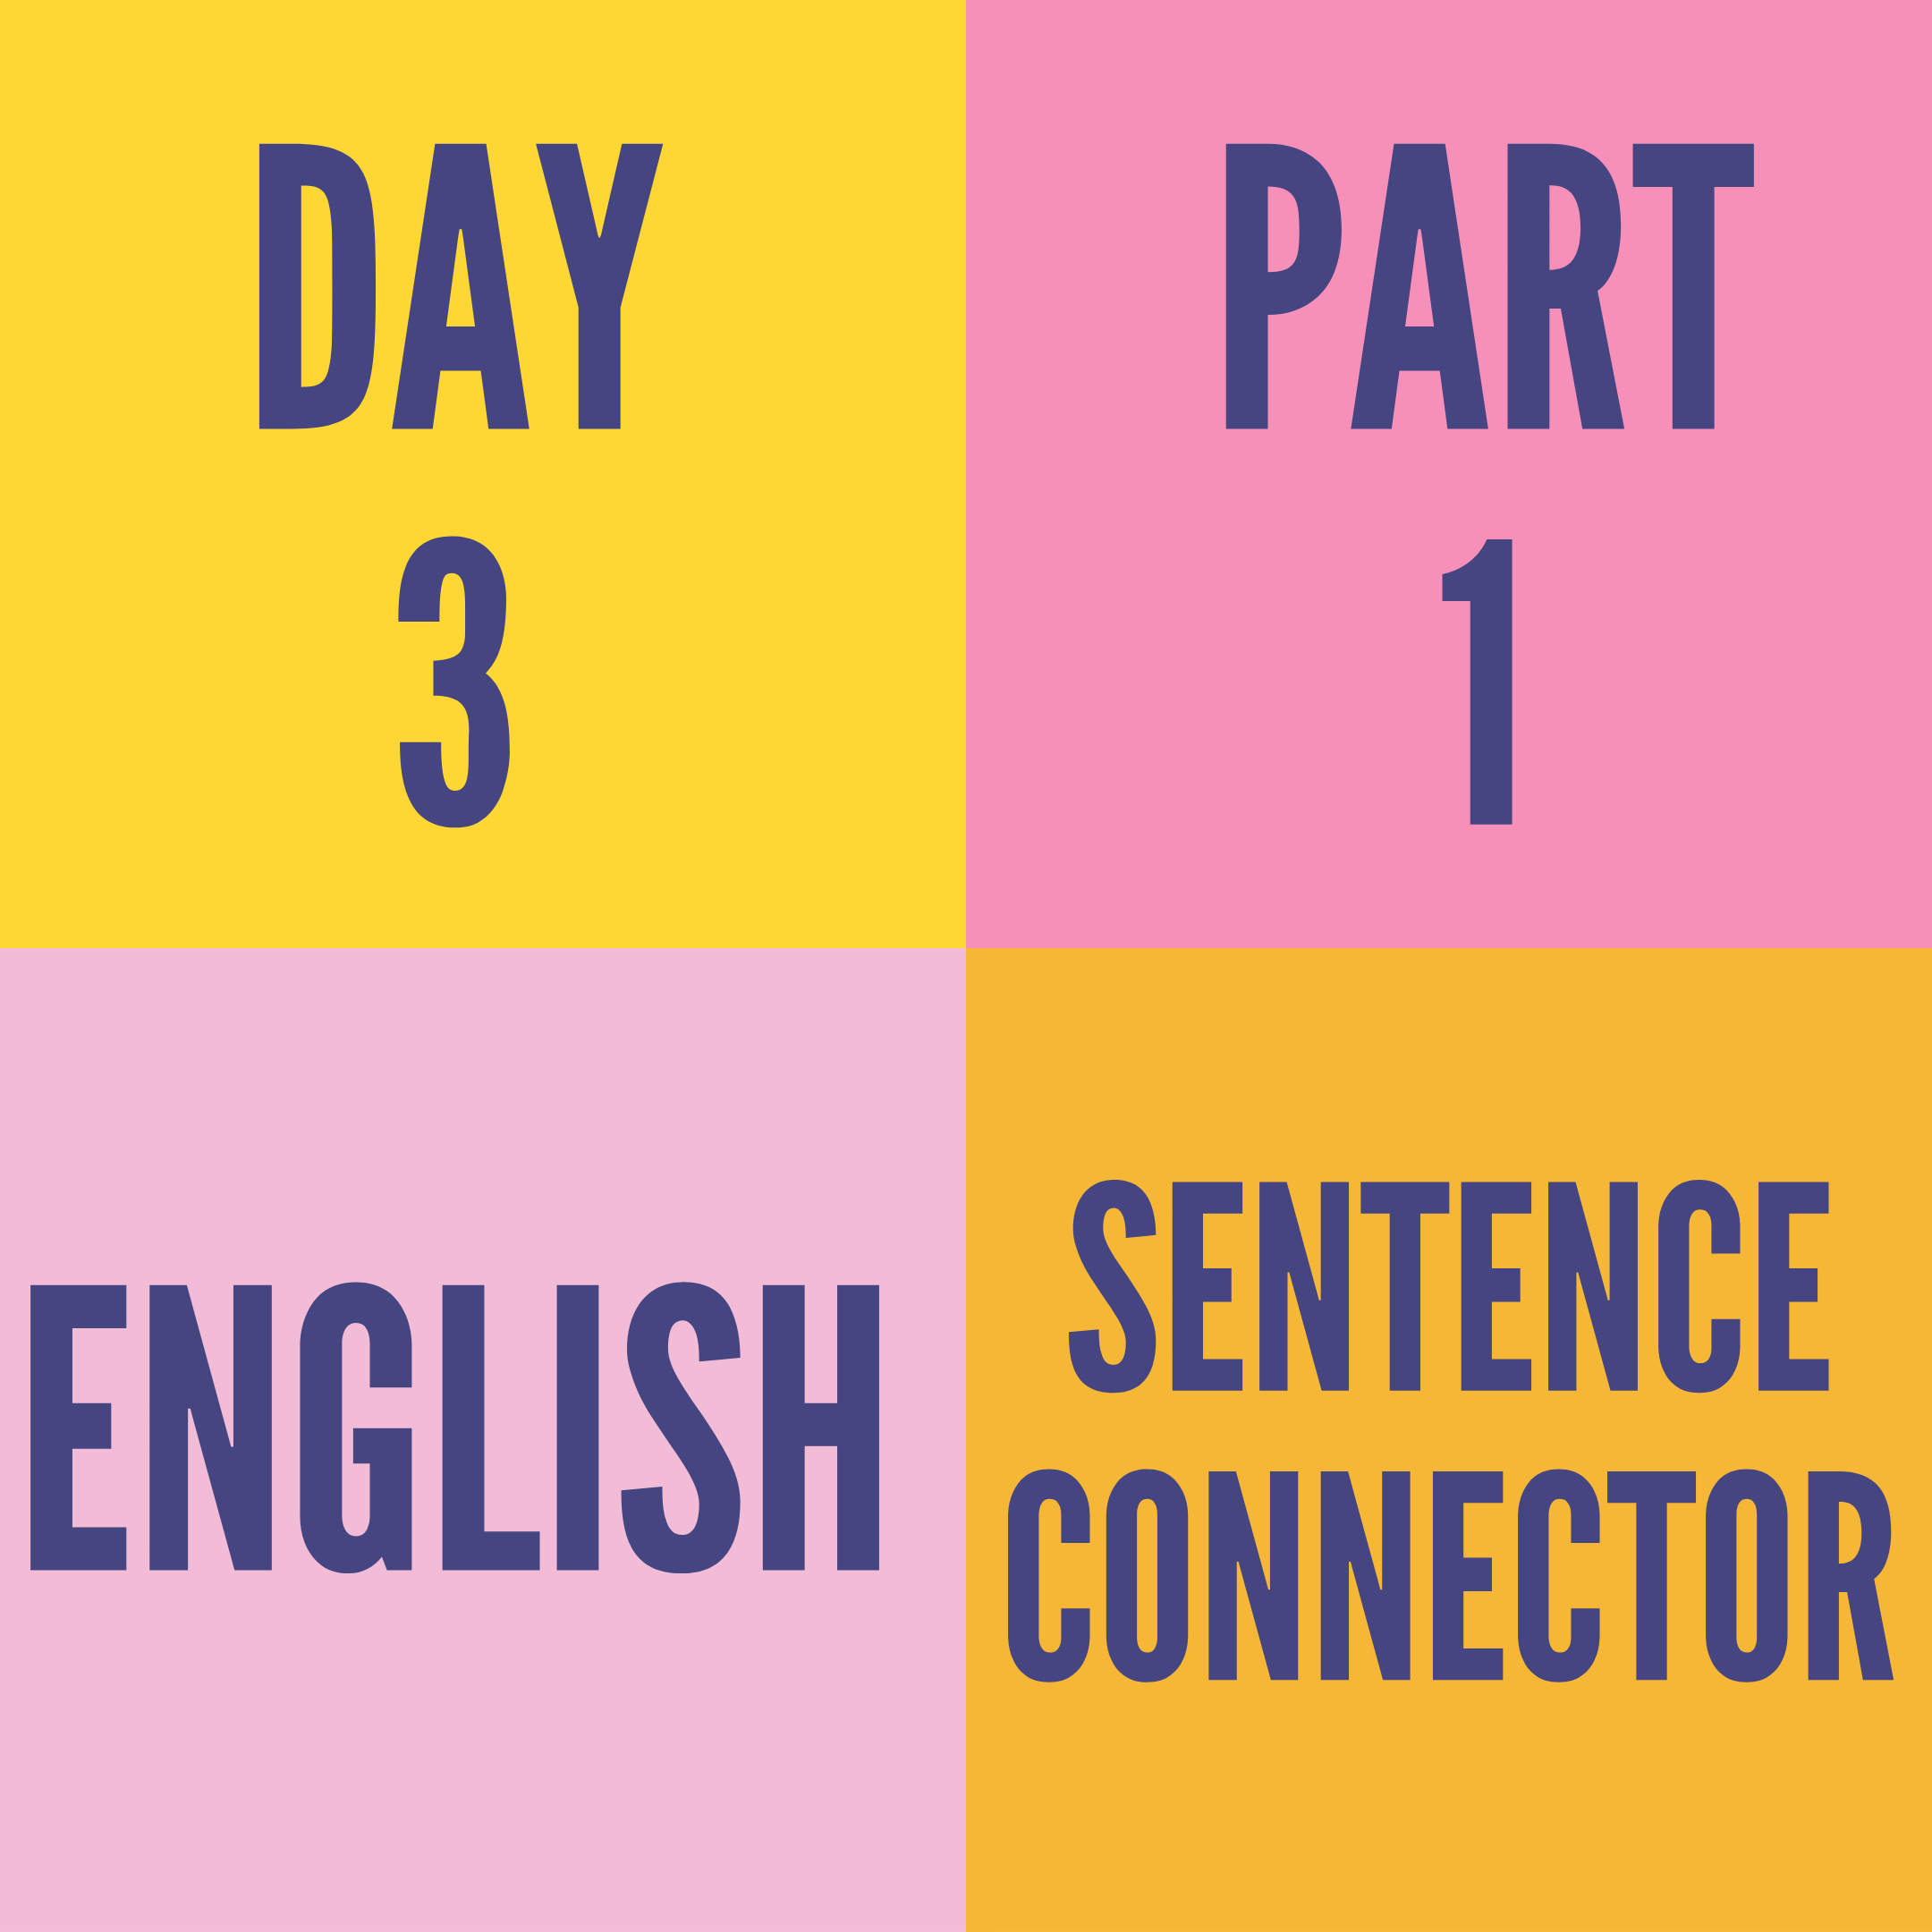 DAY-3 PART-1 SENTENCE CONNECTOR